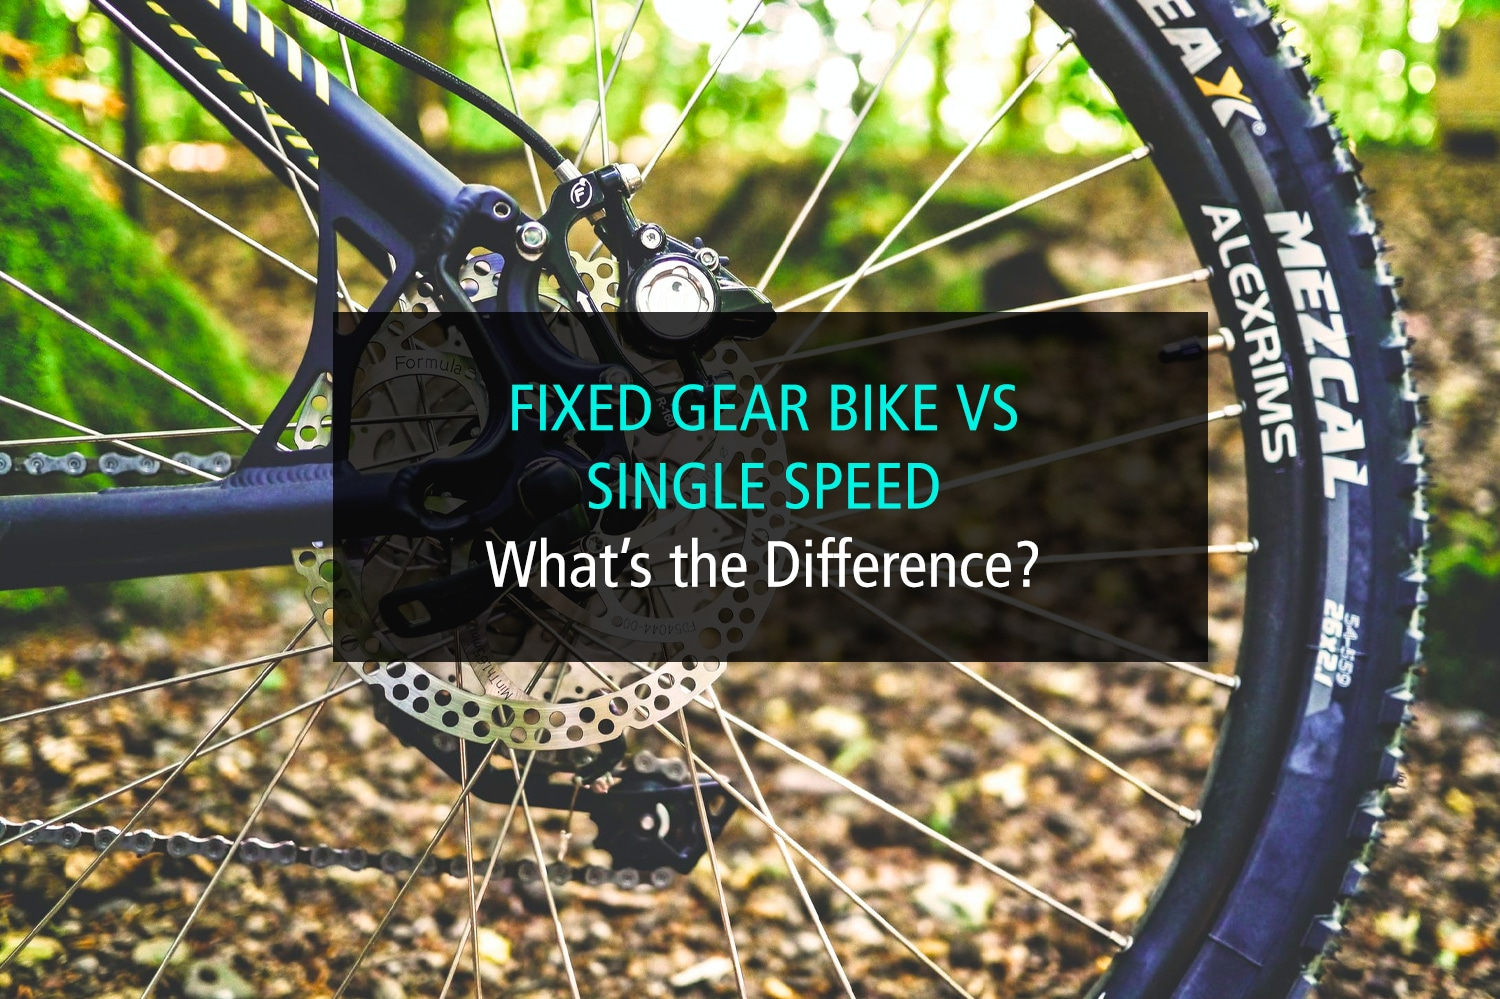 Fixed Gear Bike vs Single Speed